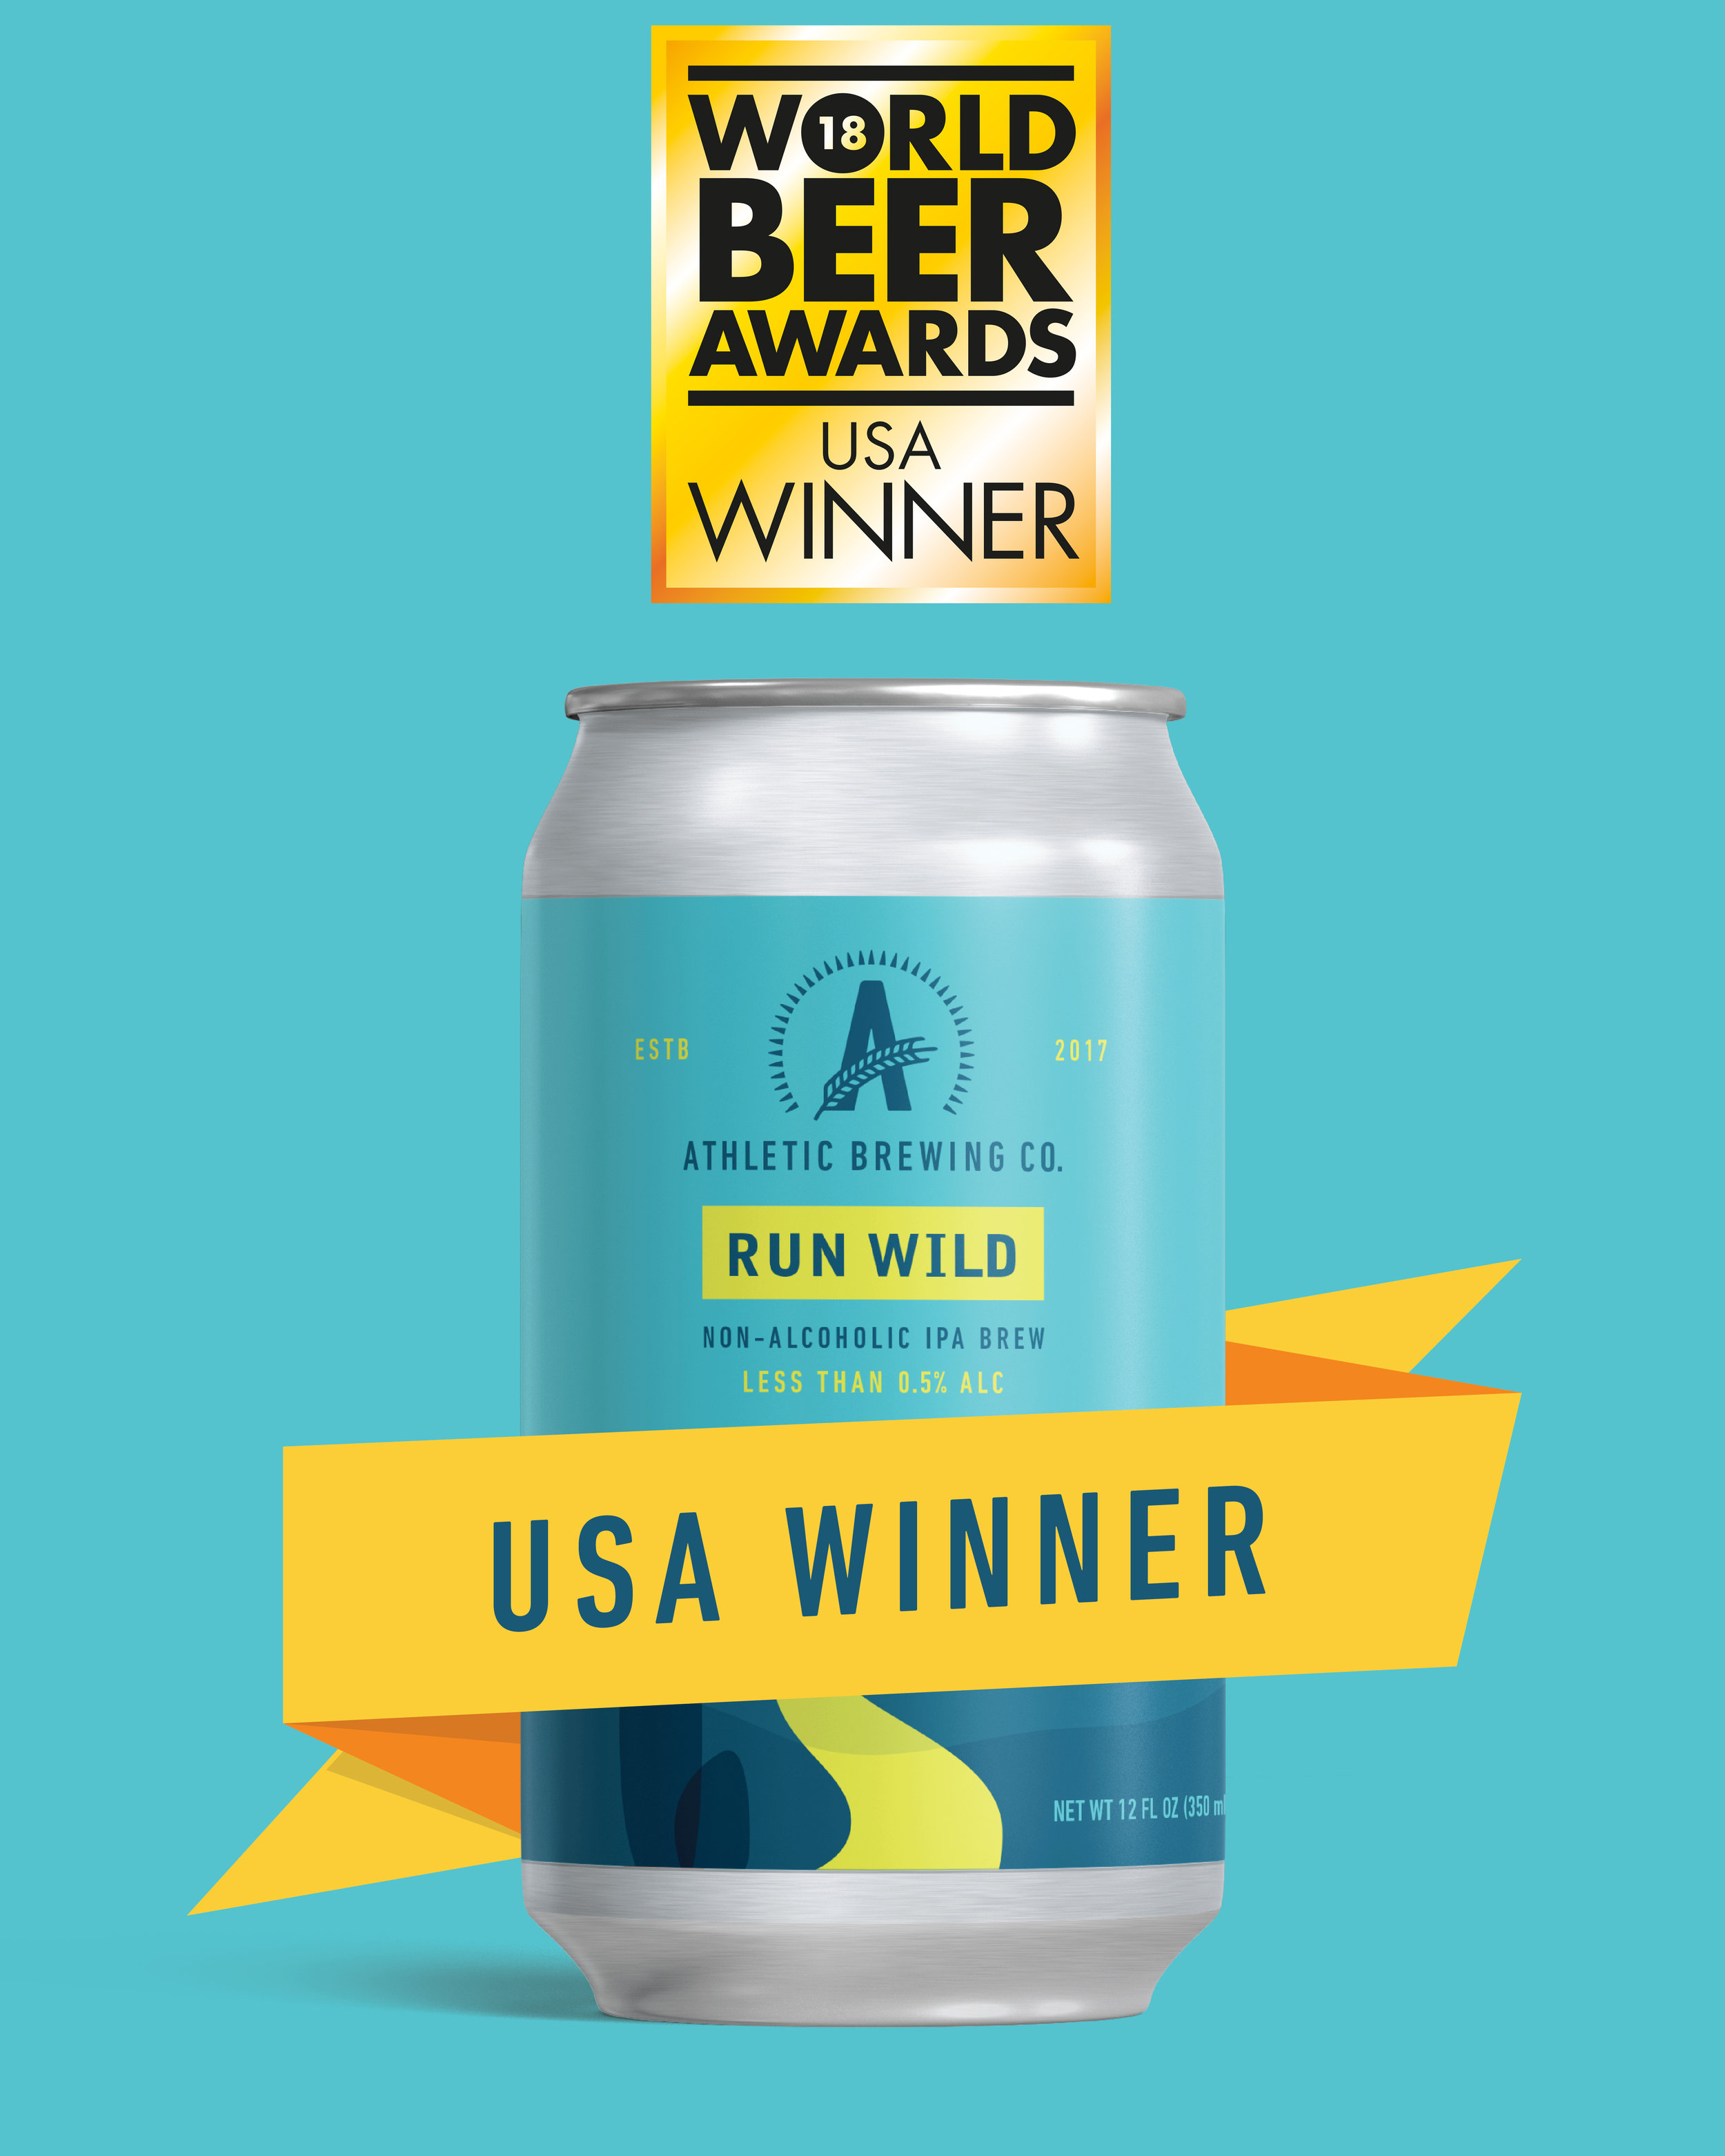 ABC_IPA_WorldBeerAwards_2018-02-02.jpg